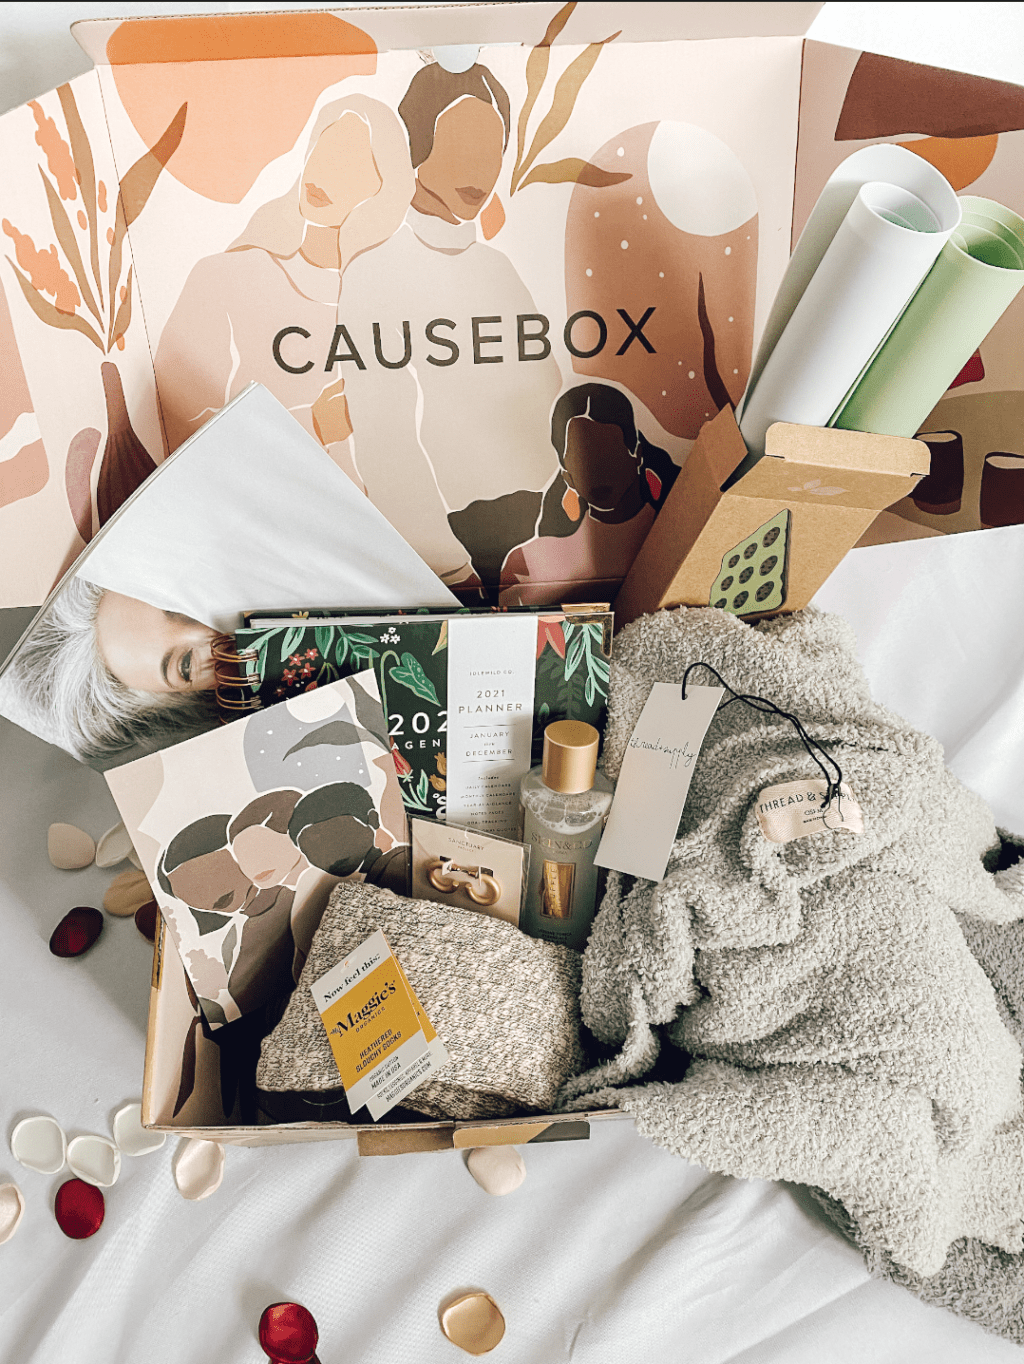 CAUSEBOX Winter 2021 Review + $10 Coupon!